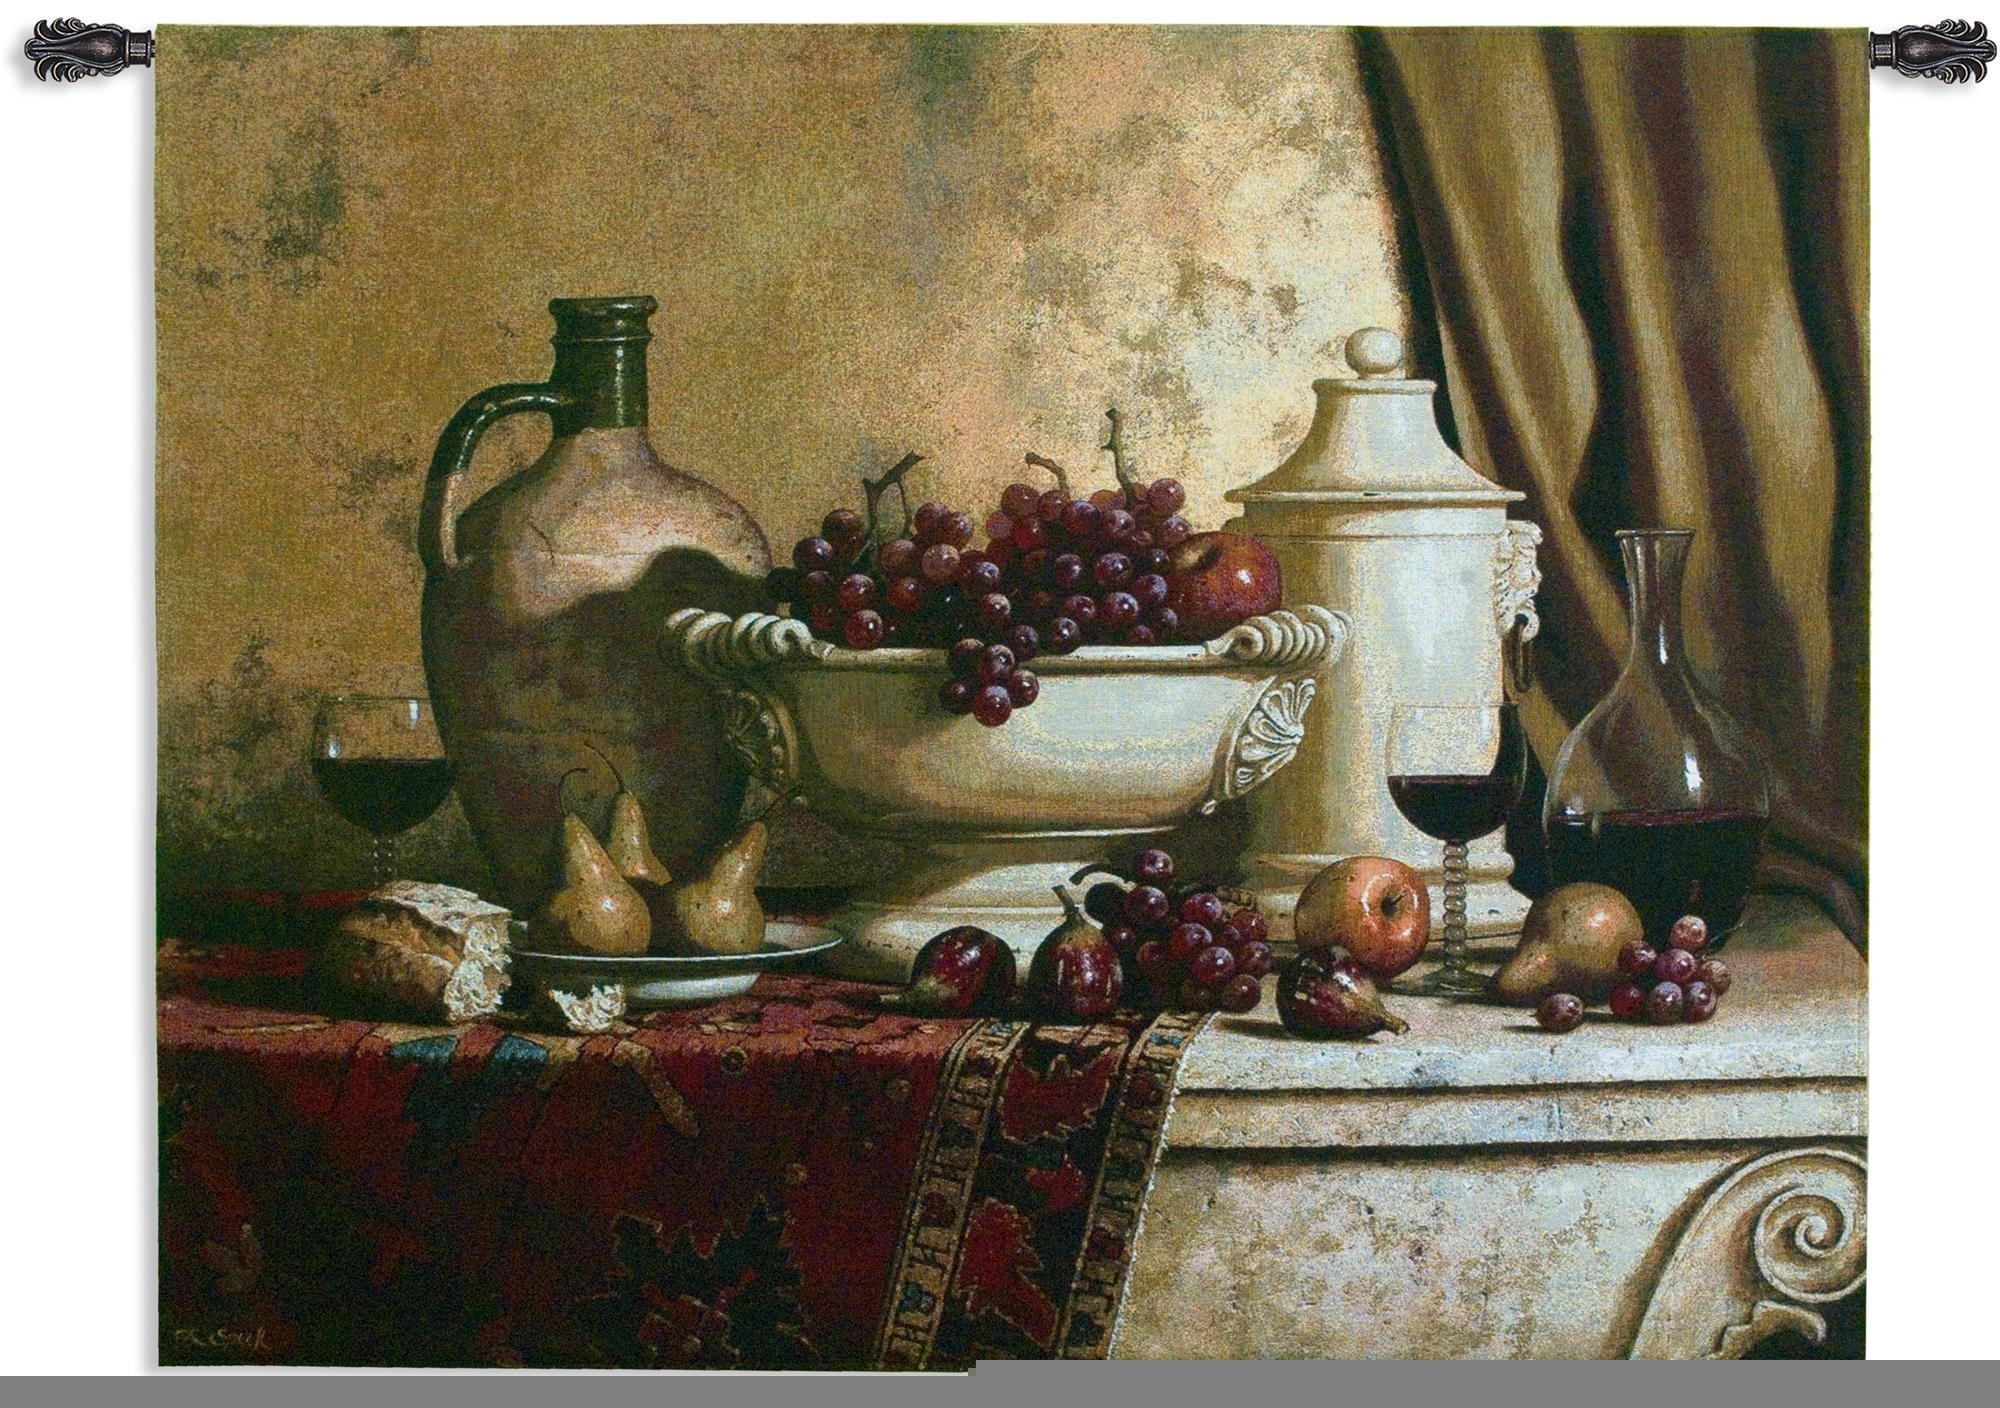 Fine Art Tapestries Italian Feast Medium Wall Tapestry 2543-WH 53 inches wide by 42 inches long, 100% cotton